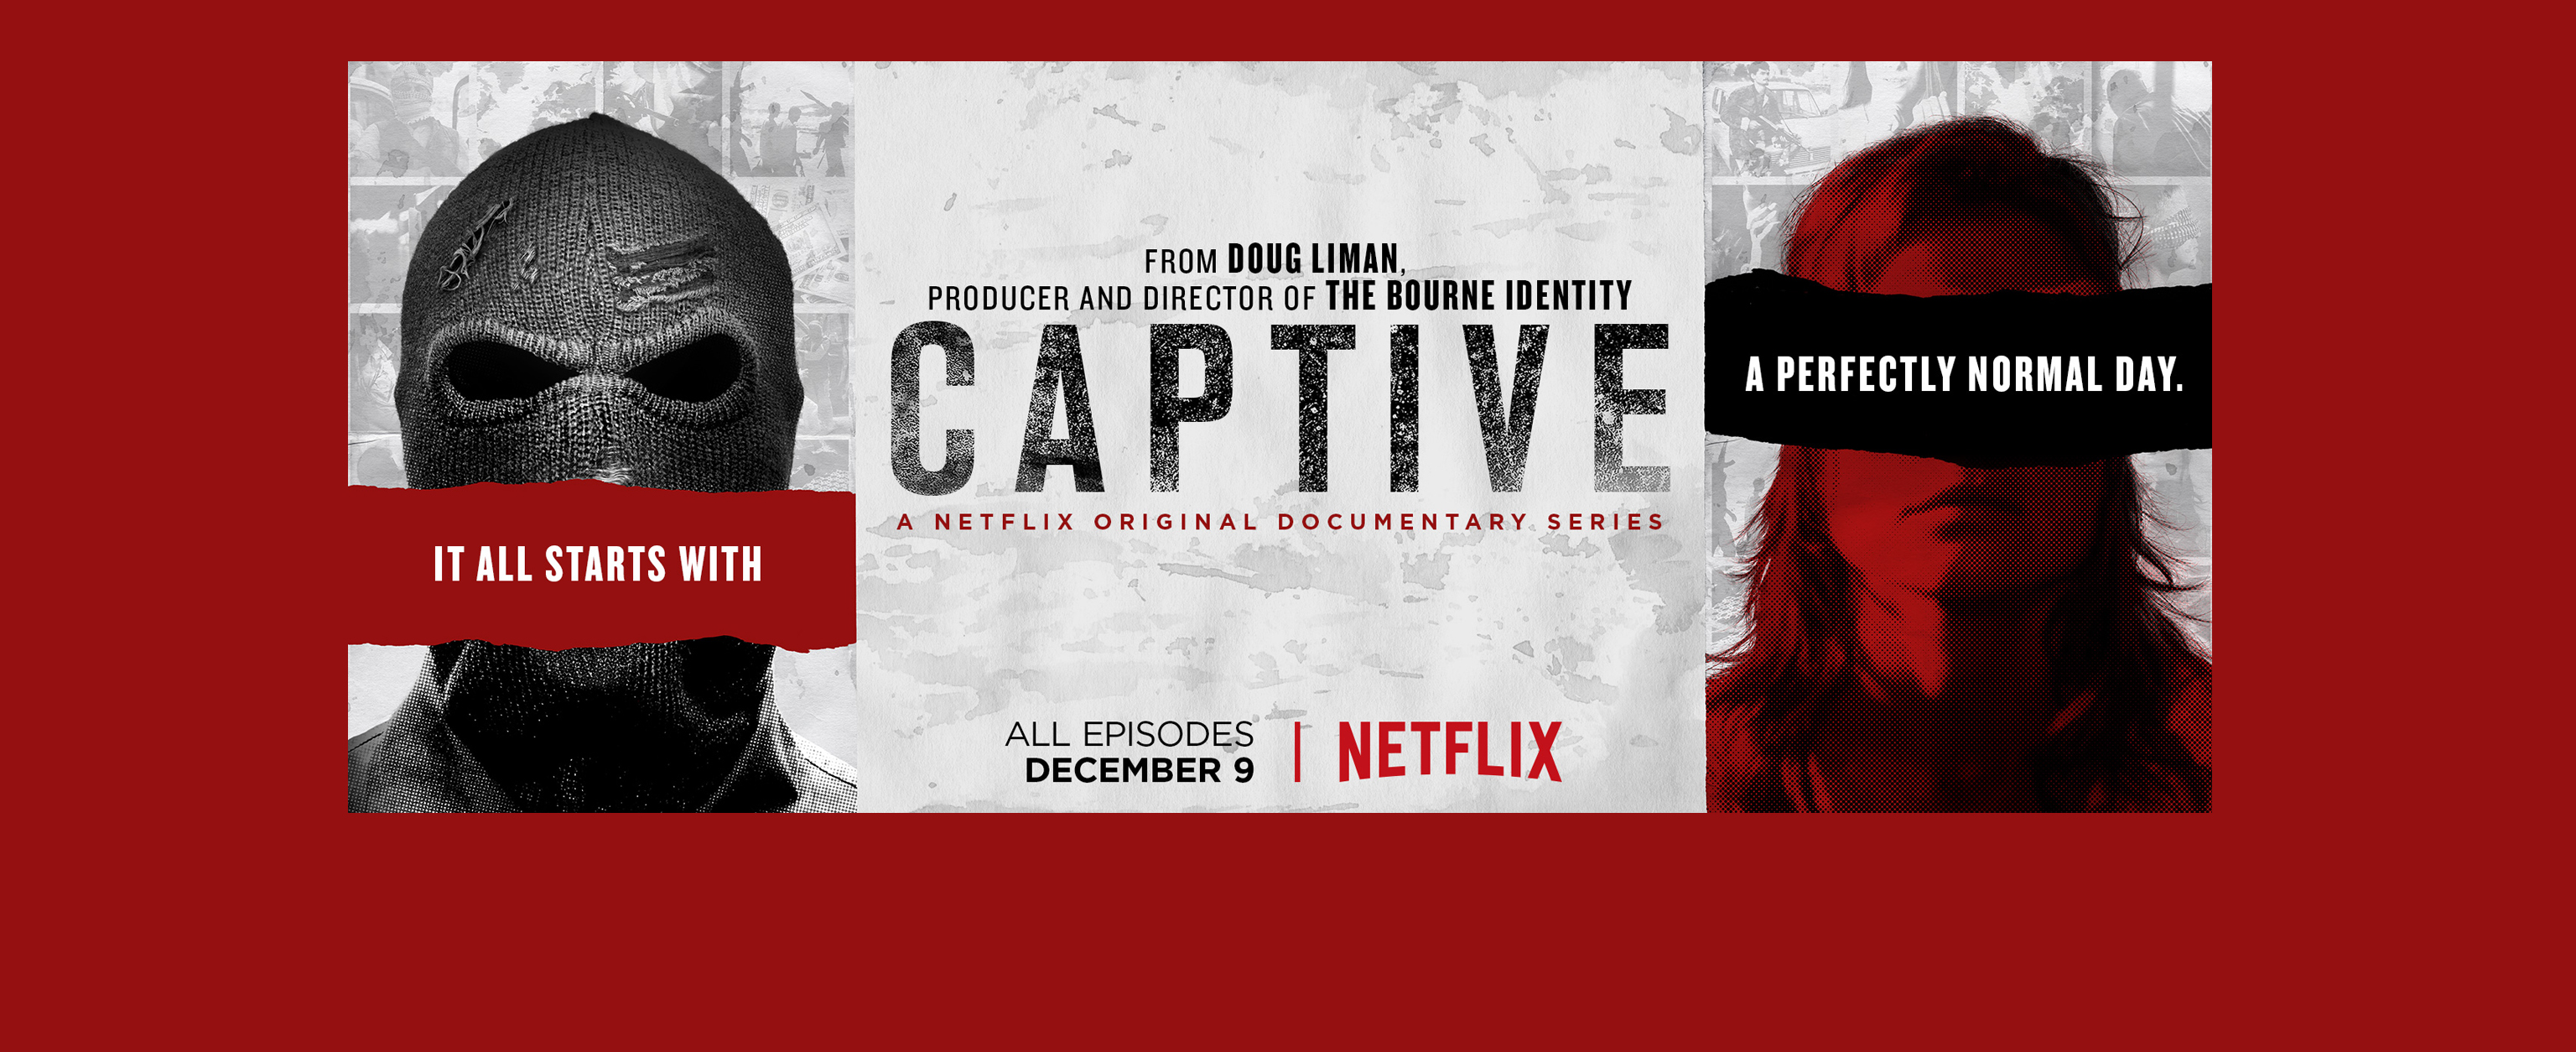 Captive-Netflix_website_big